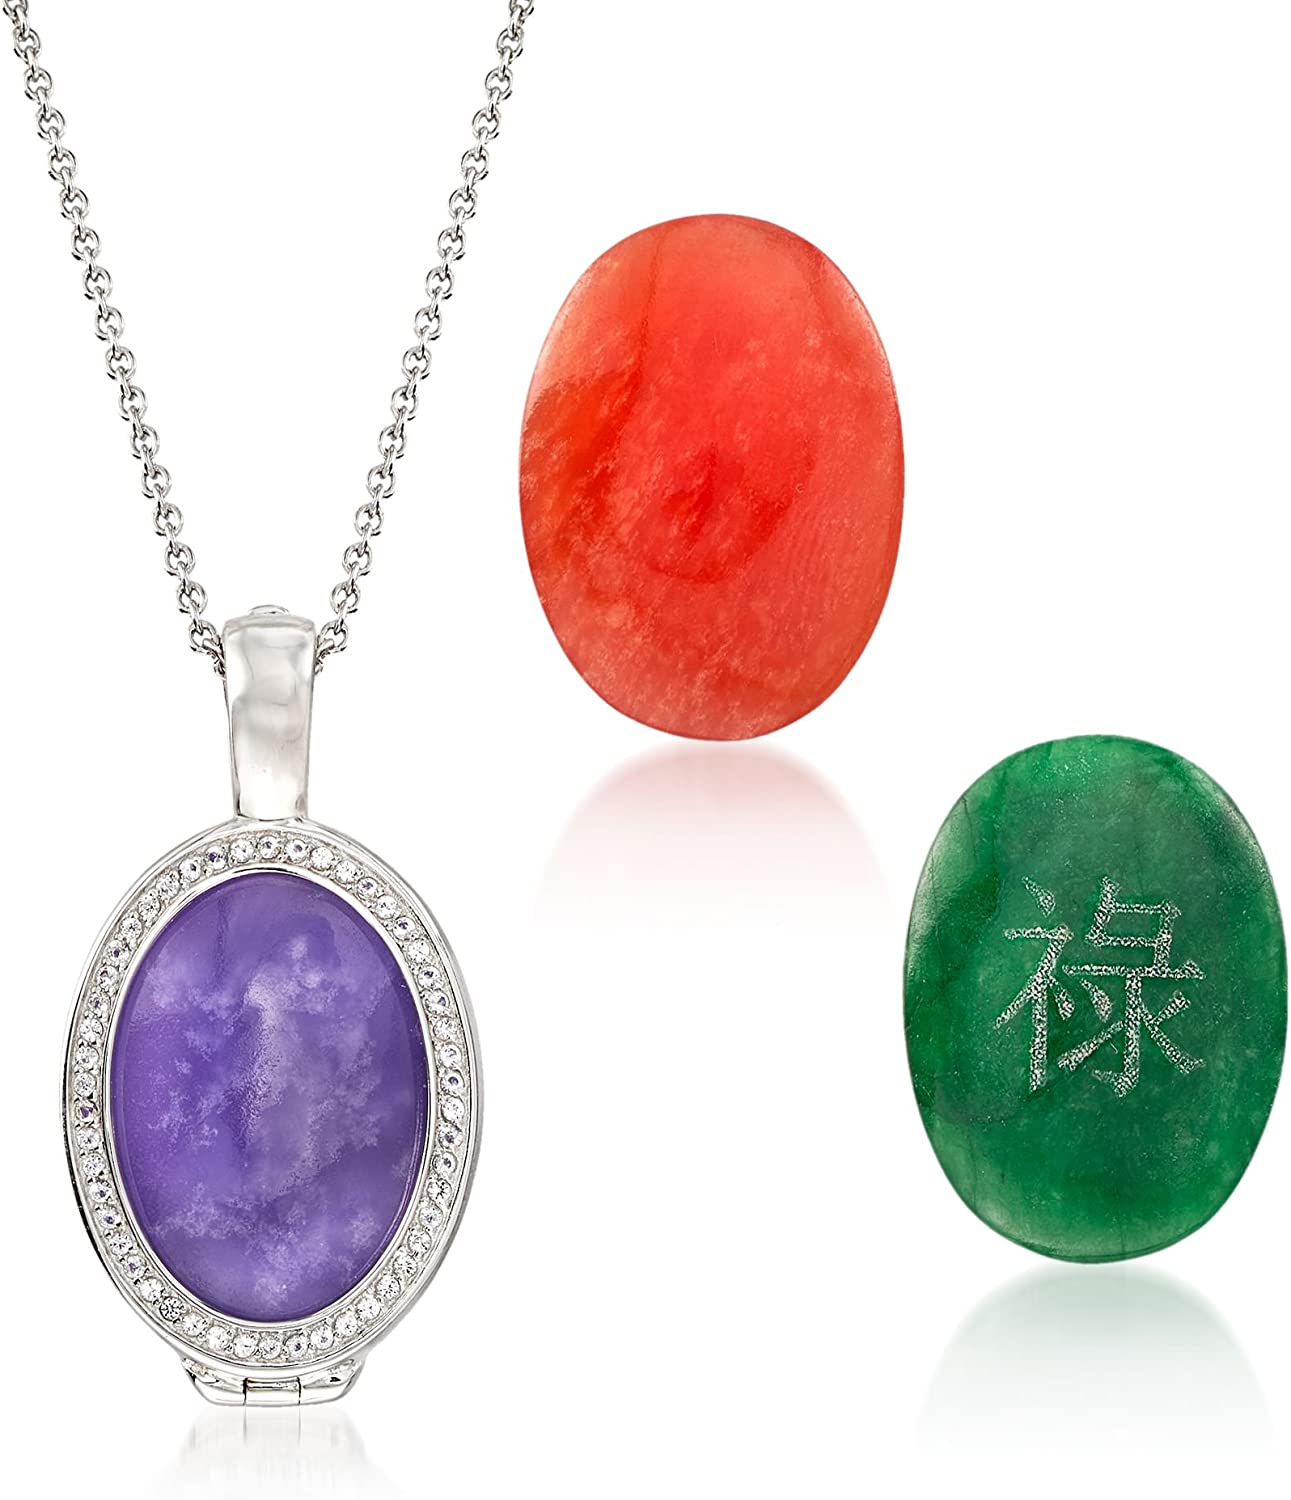 t.w White Topaz in Sterling Ross-Simons Multicolored Interchangeable Oval Jade Cabochon Pendant Necklace With .30 ct